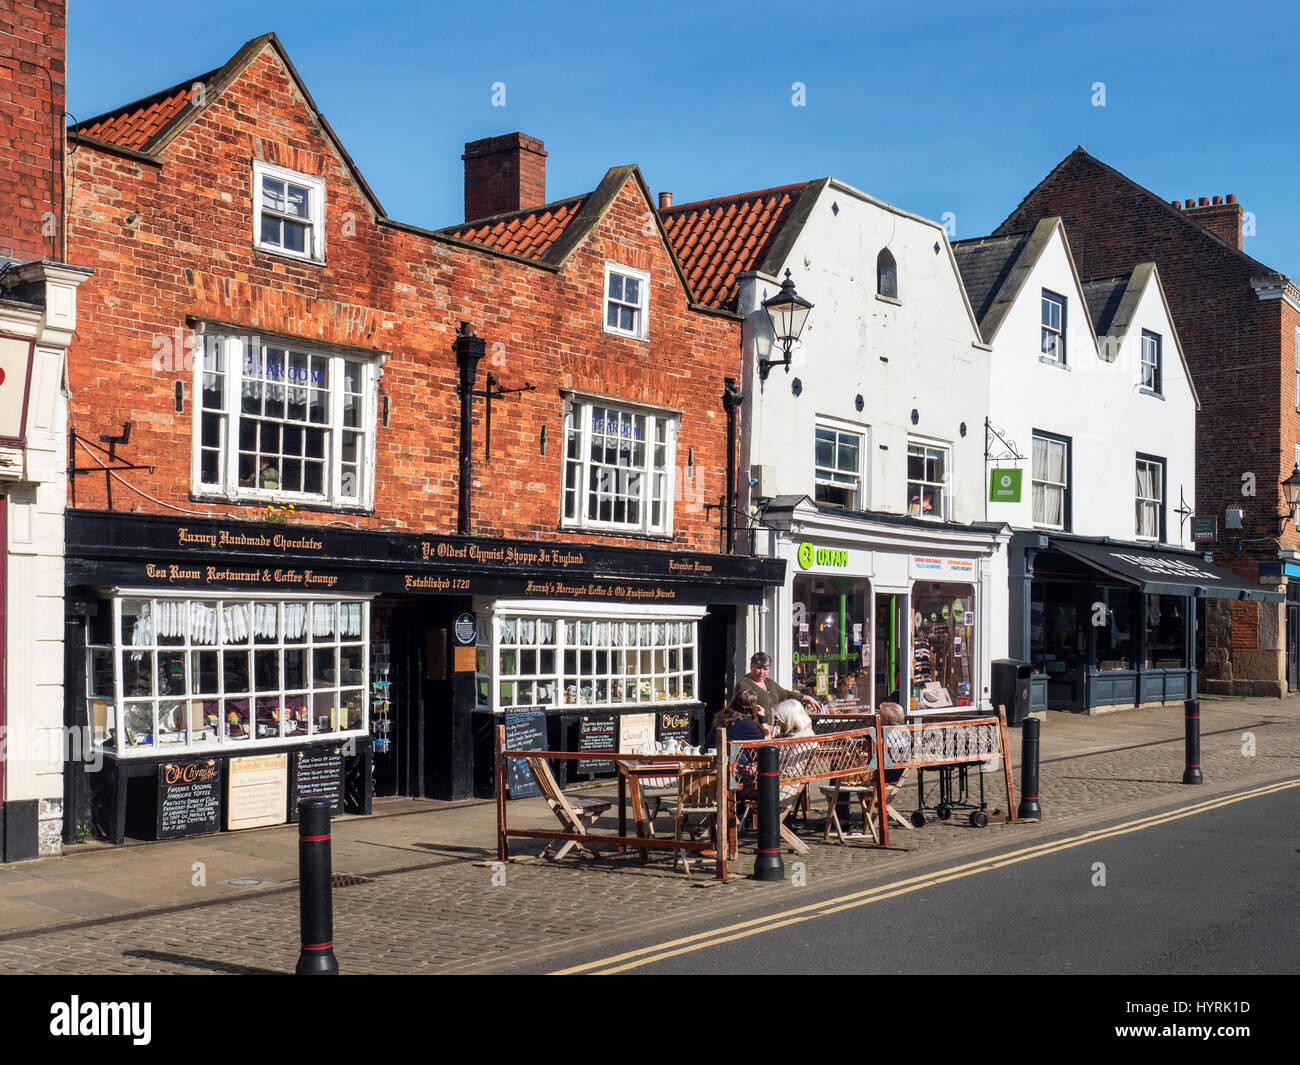 The Oldest Chemist Shop and Levender Tea Rooms in the Market Place at Knaresborough North Yorkshire England - Stock Image